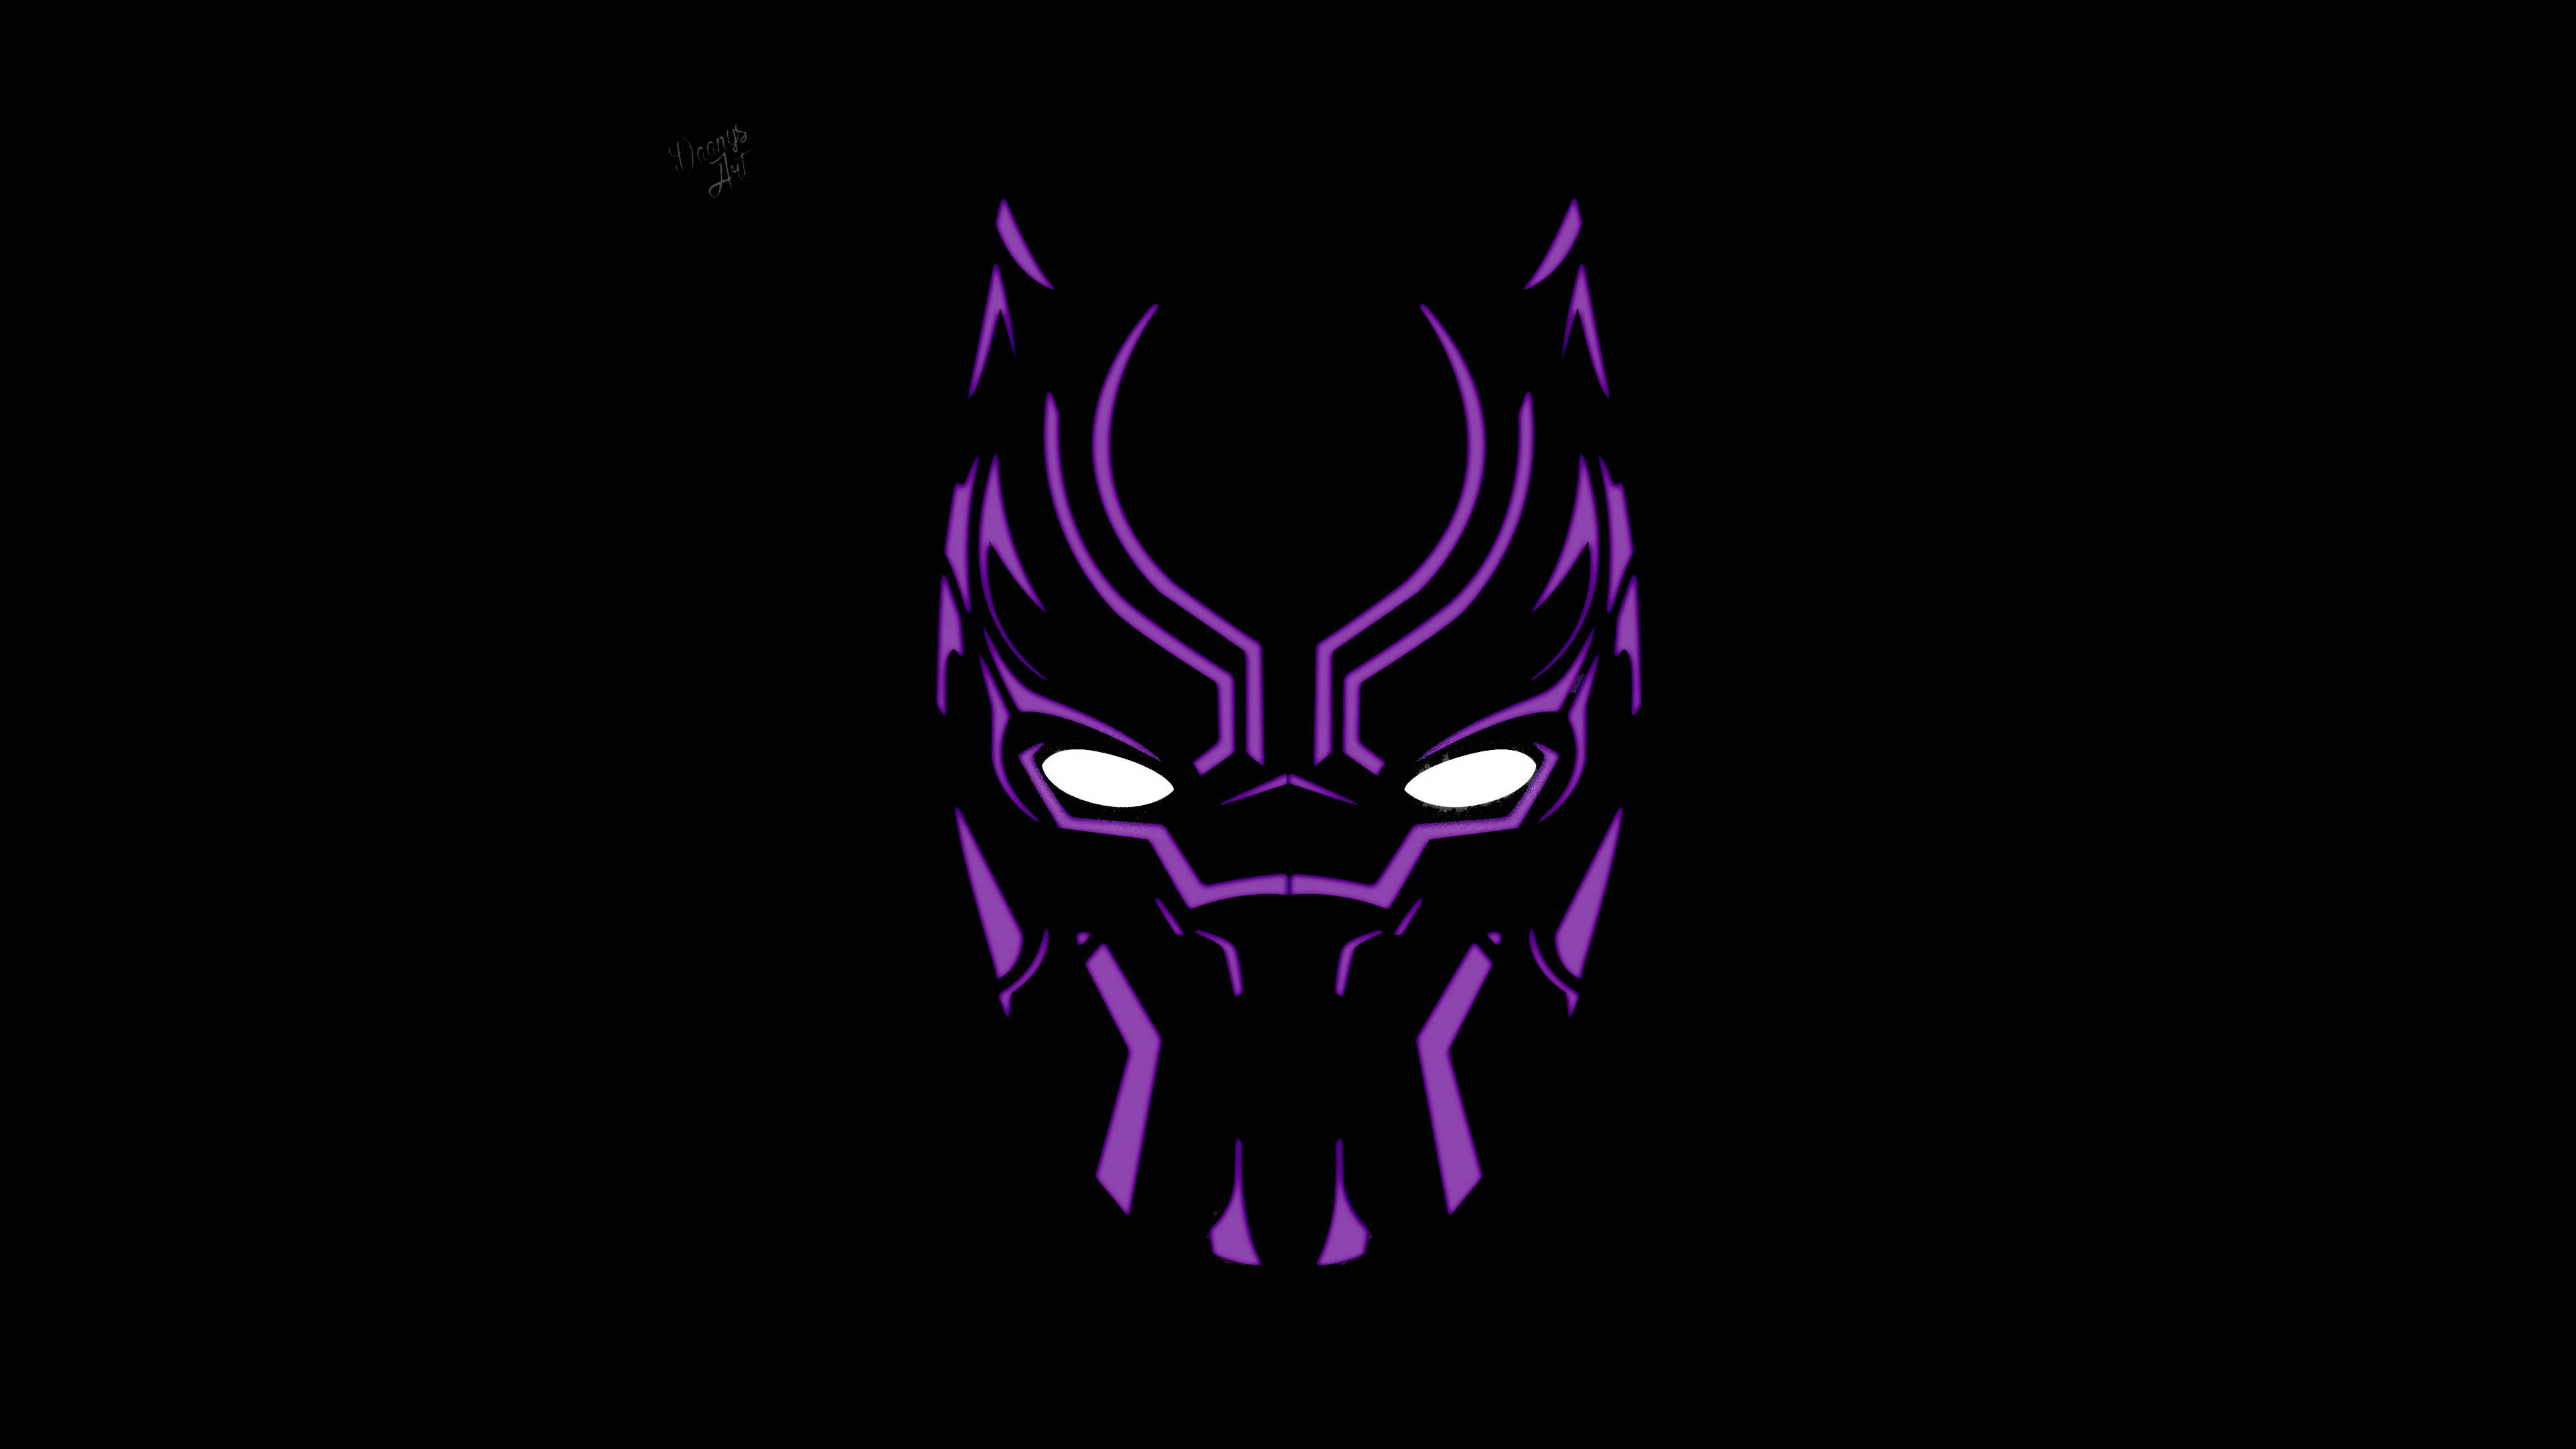 Black Panther Illustration 4k Artwork Hd Movies 4k Wallpapers Images Backgrounds Photos And Pictures